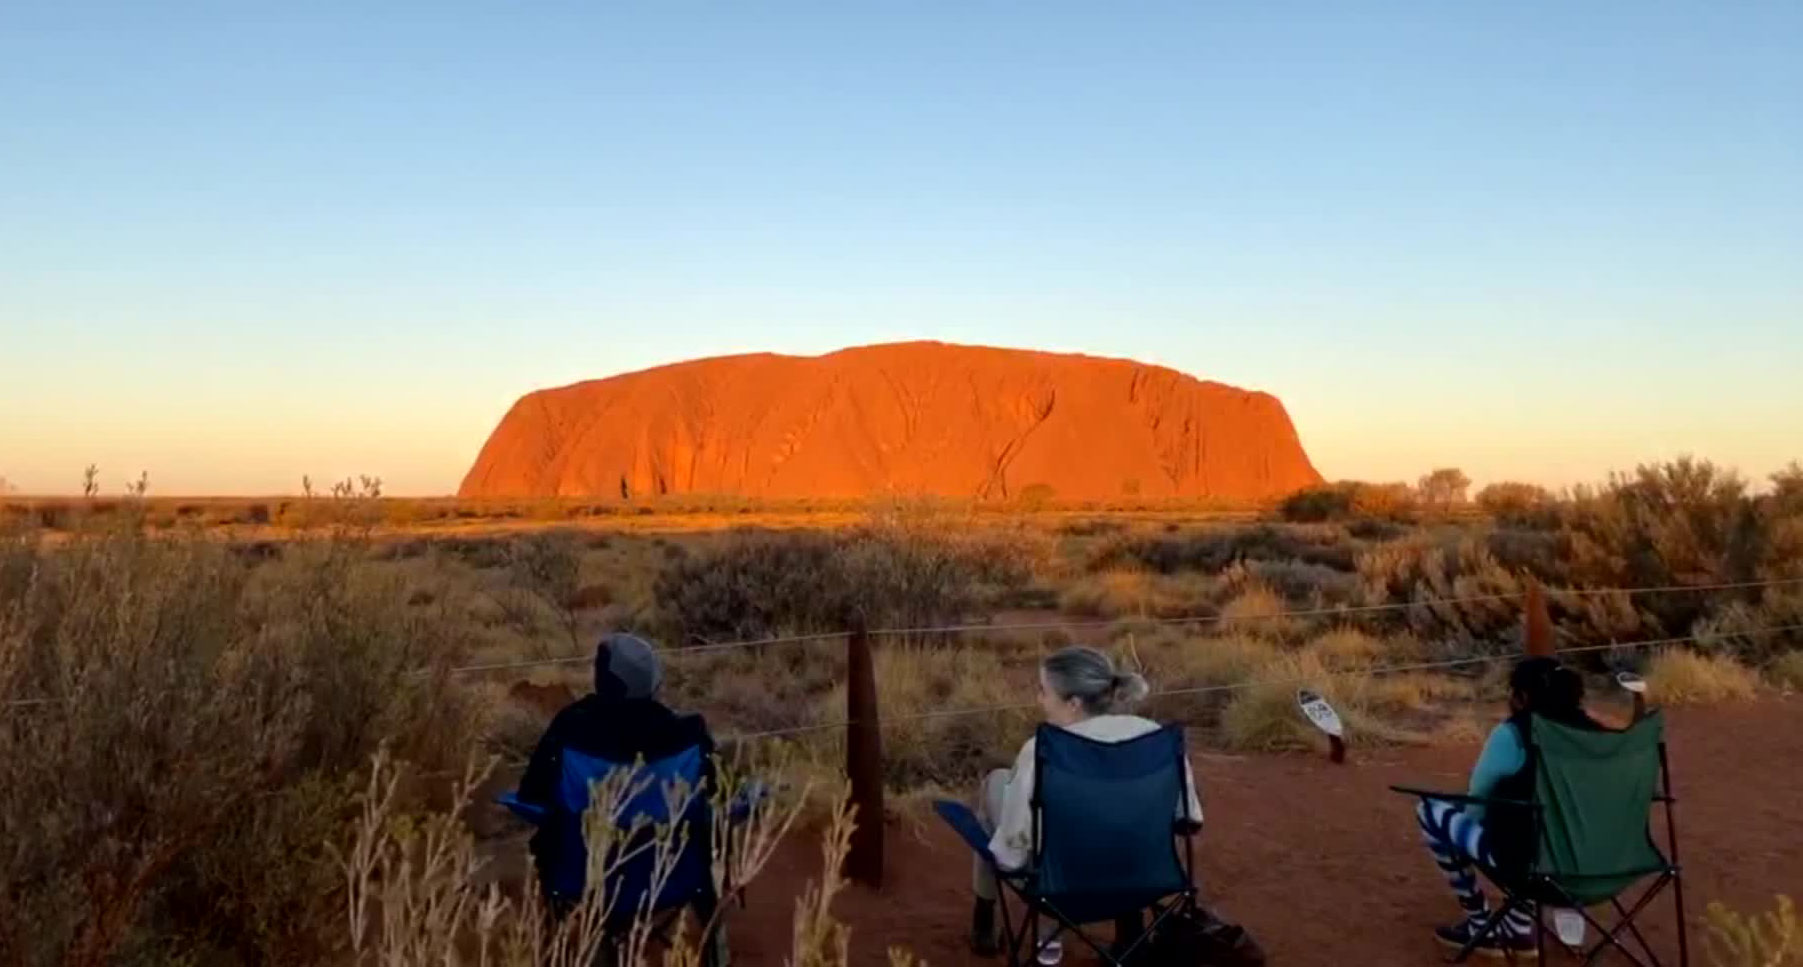 Uluru is one of Australia's most famous tourist attractions.